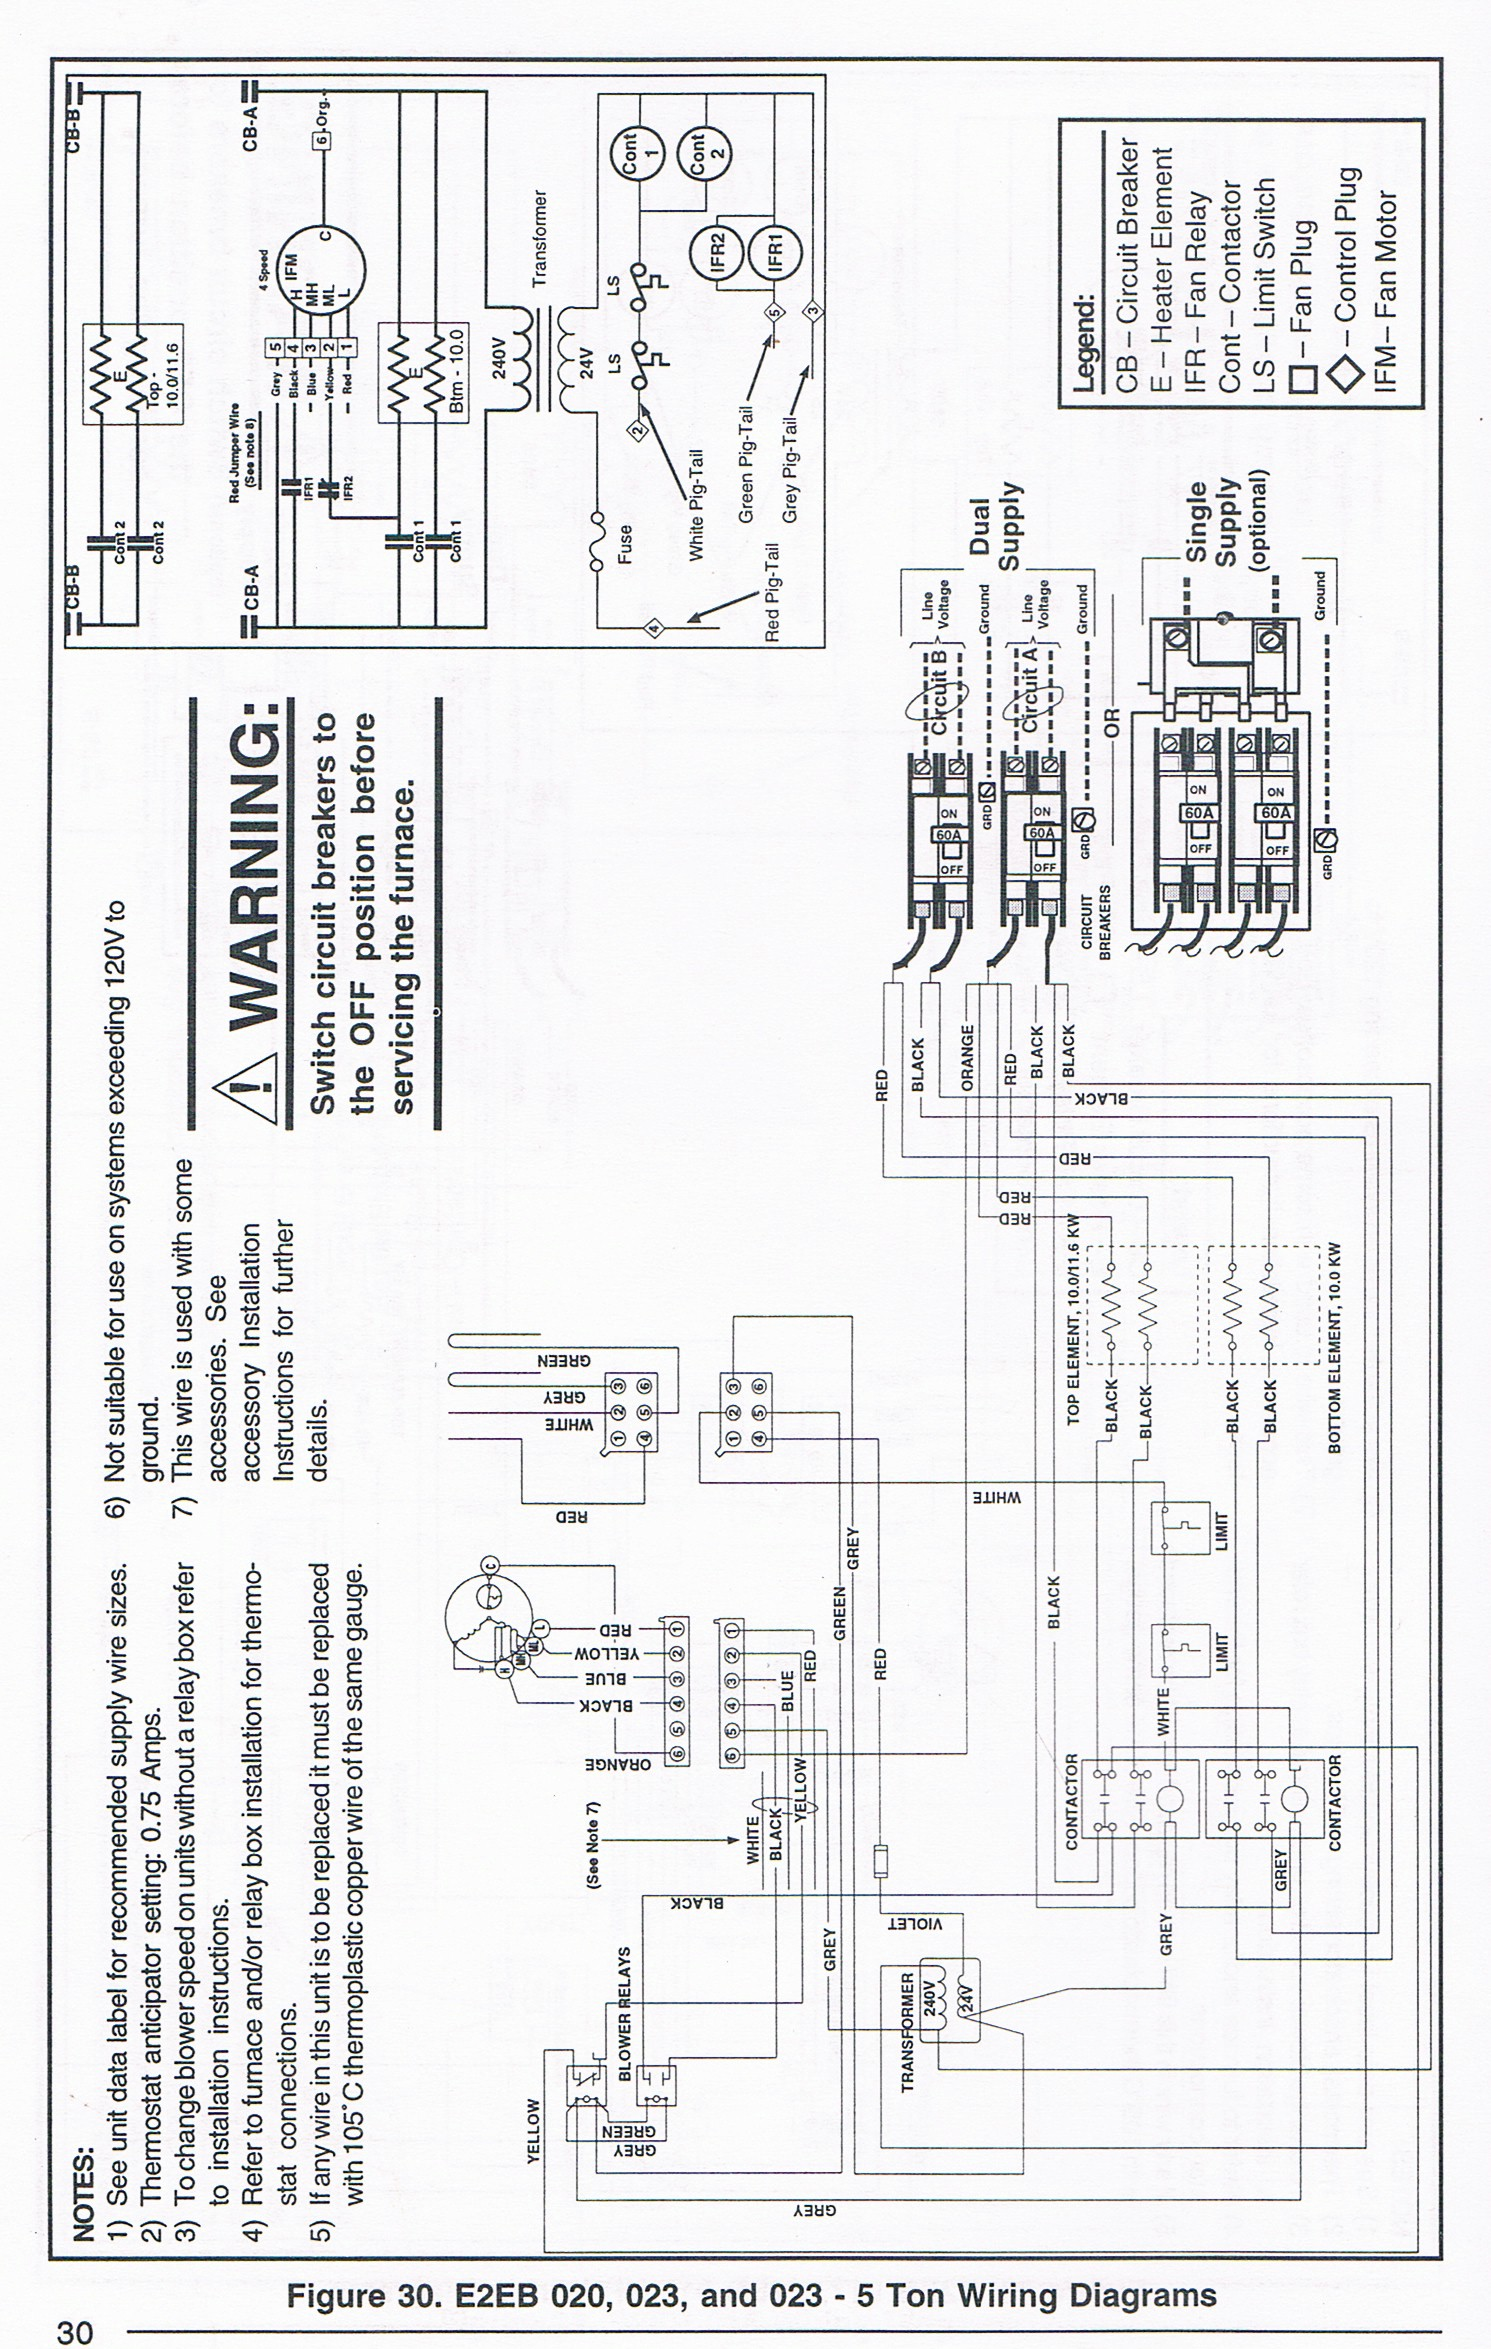 hight resolution of wrg 3991 e2eb 012ha wiring diagram wiring mobile diagram home furnace e2e 012h